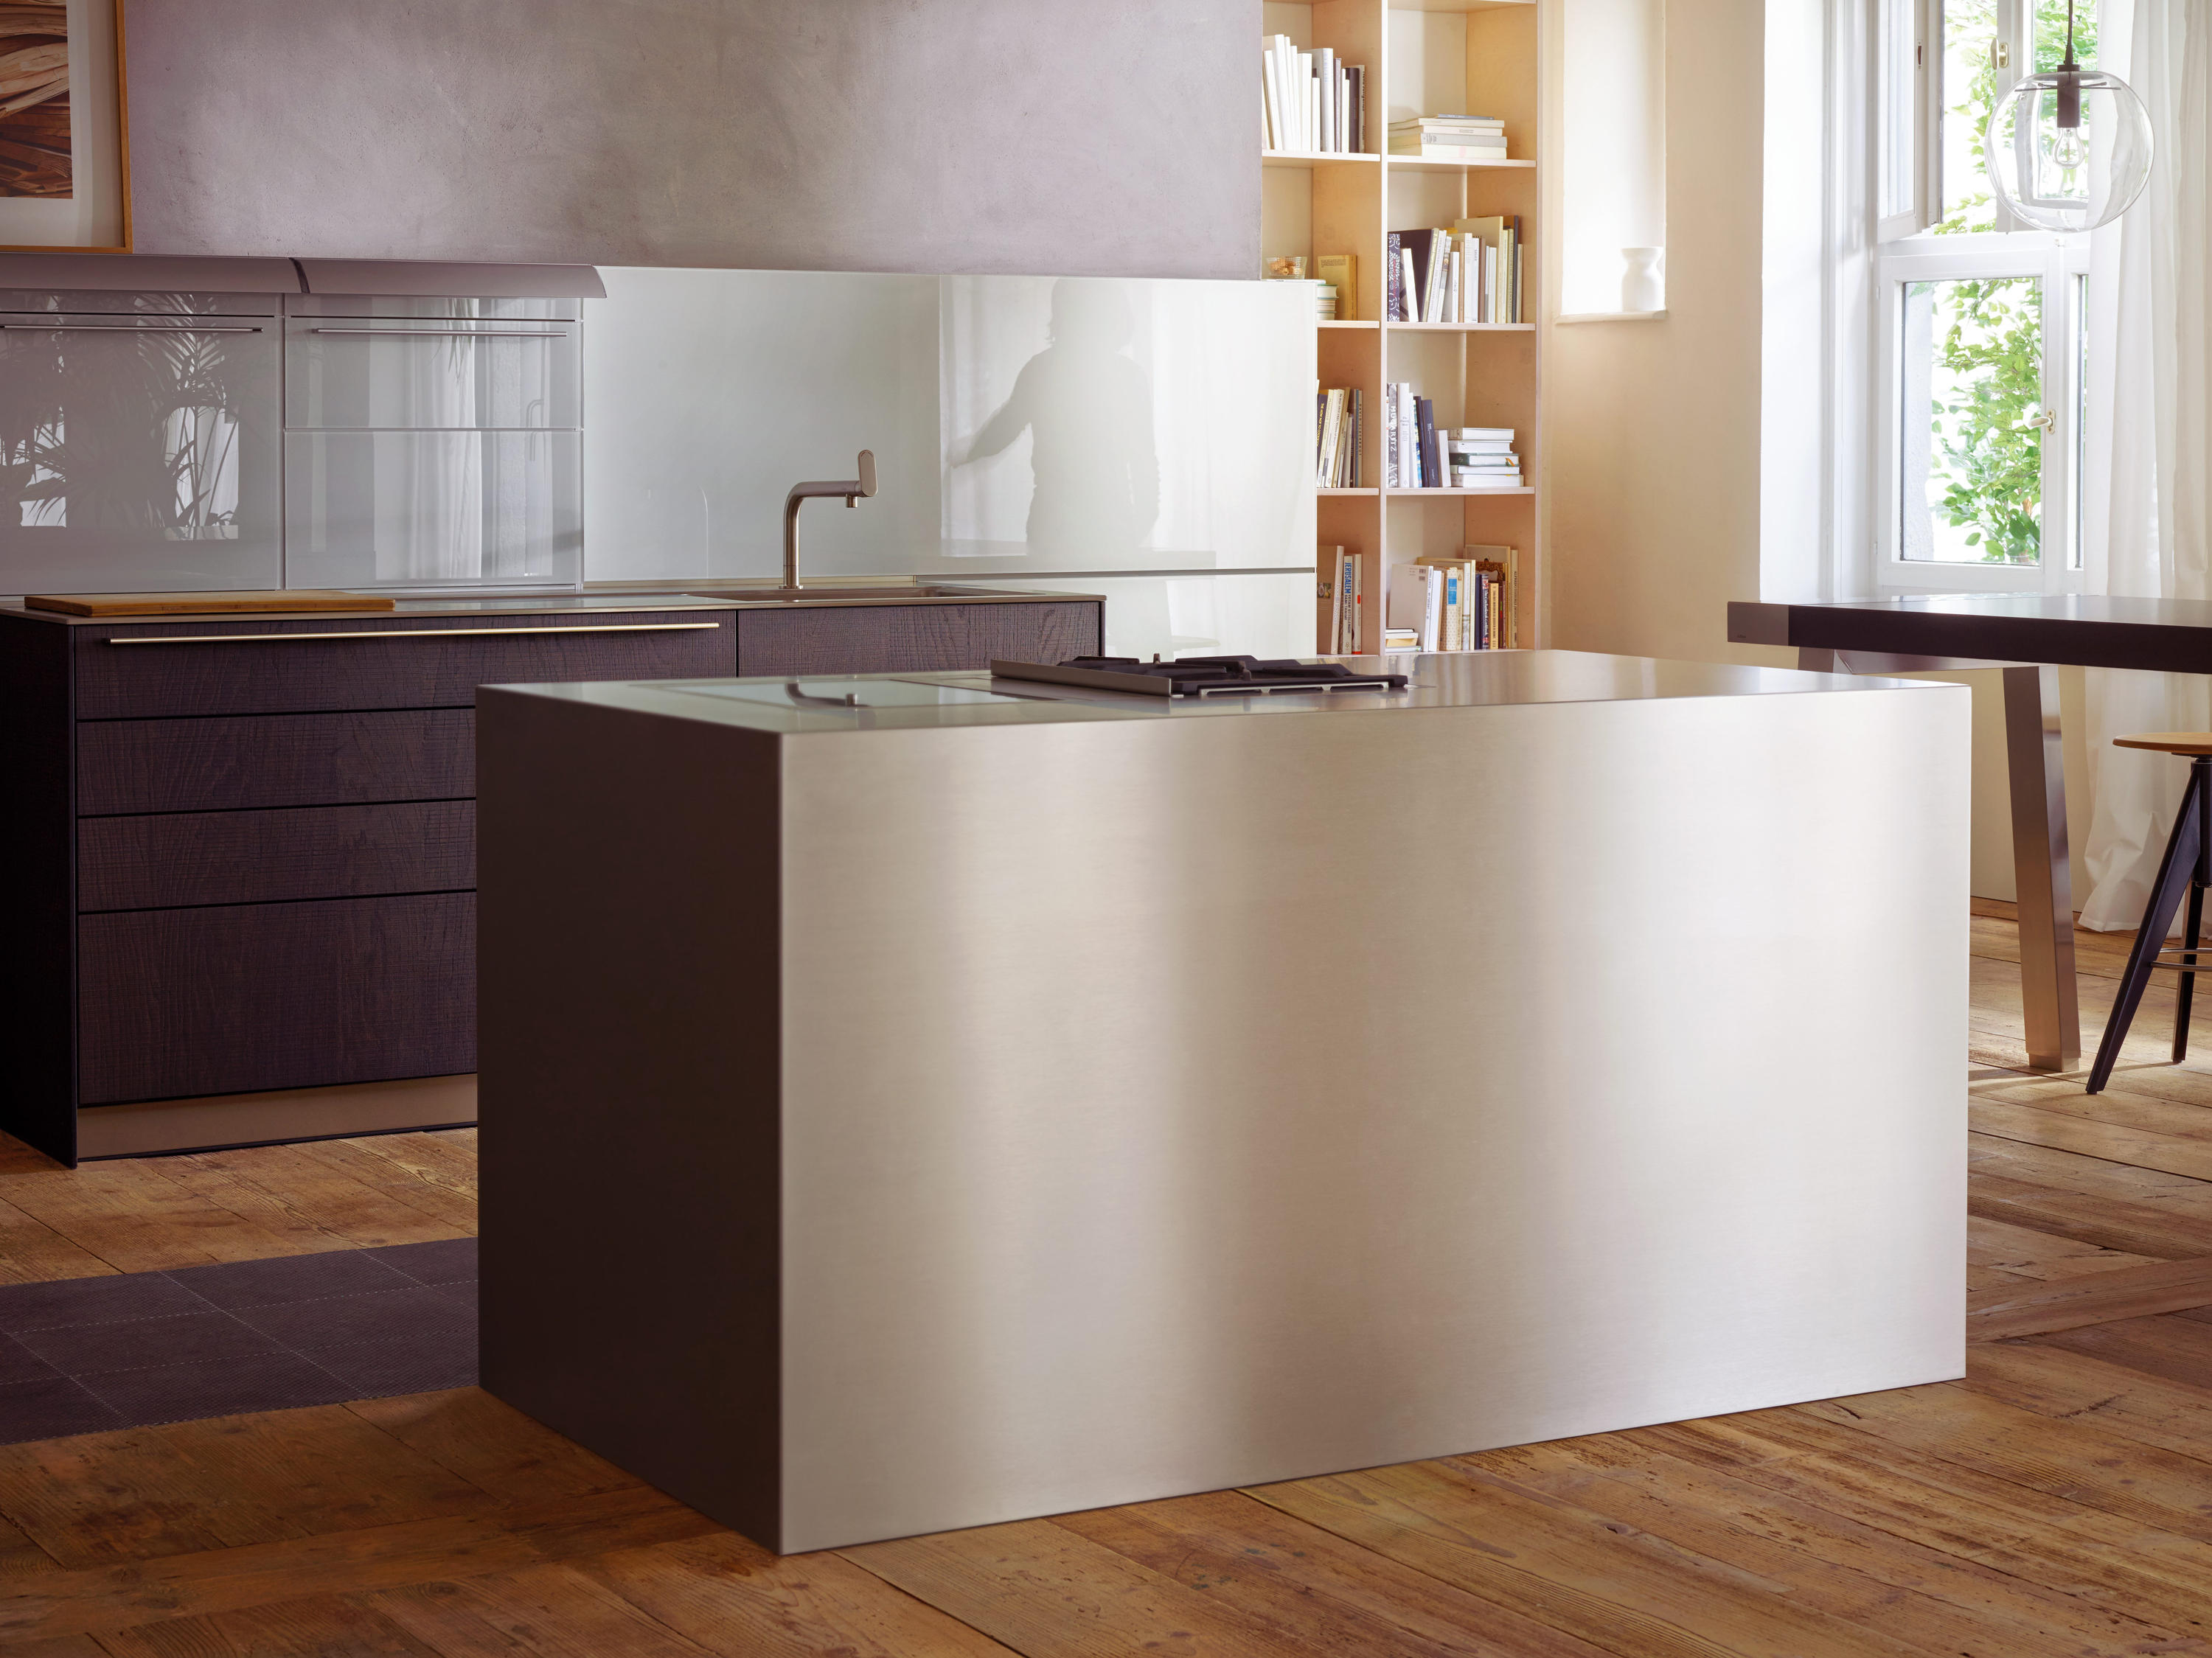 b3 stainless steel and aluminum fitted kitchens from. Black Bedroom Furniture Sets. Home Design Ideas